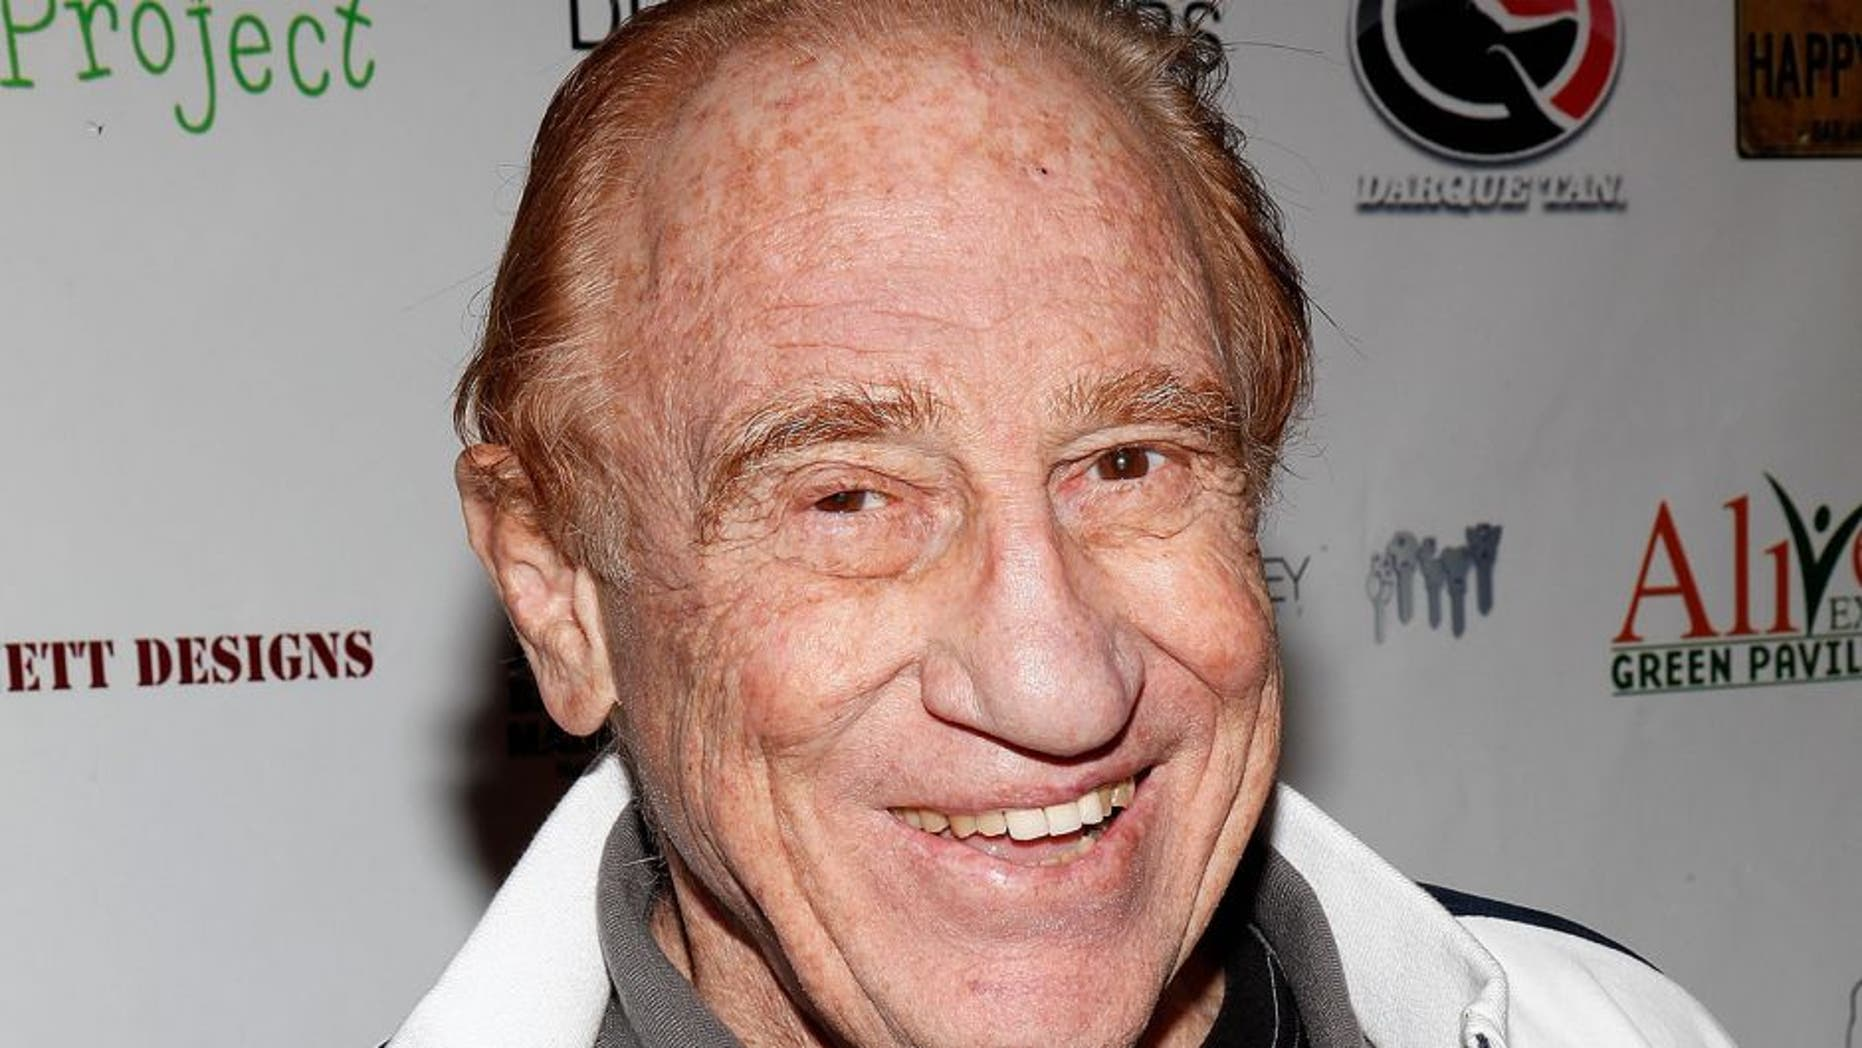 """HOLLYWOOD - FEBRUARY 21: Gene LeBell attends """"Changing Hands"""" premiere at The Happy Ending Bar & Restaurant on February 21, 2010 in Hollywood, California. (Photo by Brian To/FilmMagic) *** Local Caption *** Gene LeBell"""